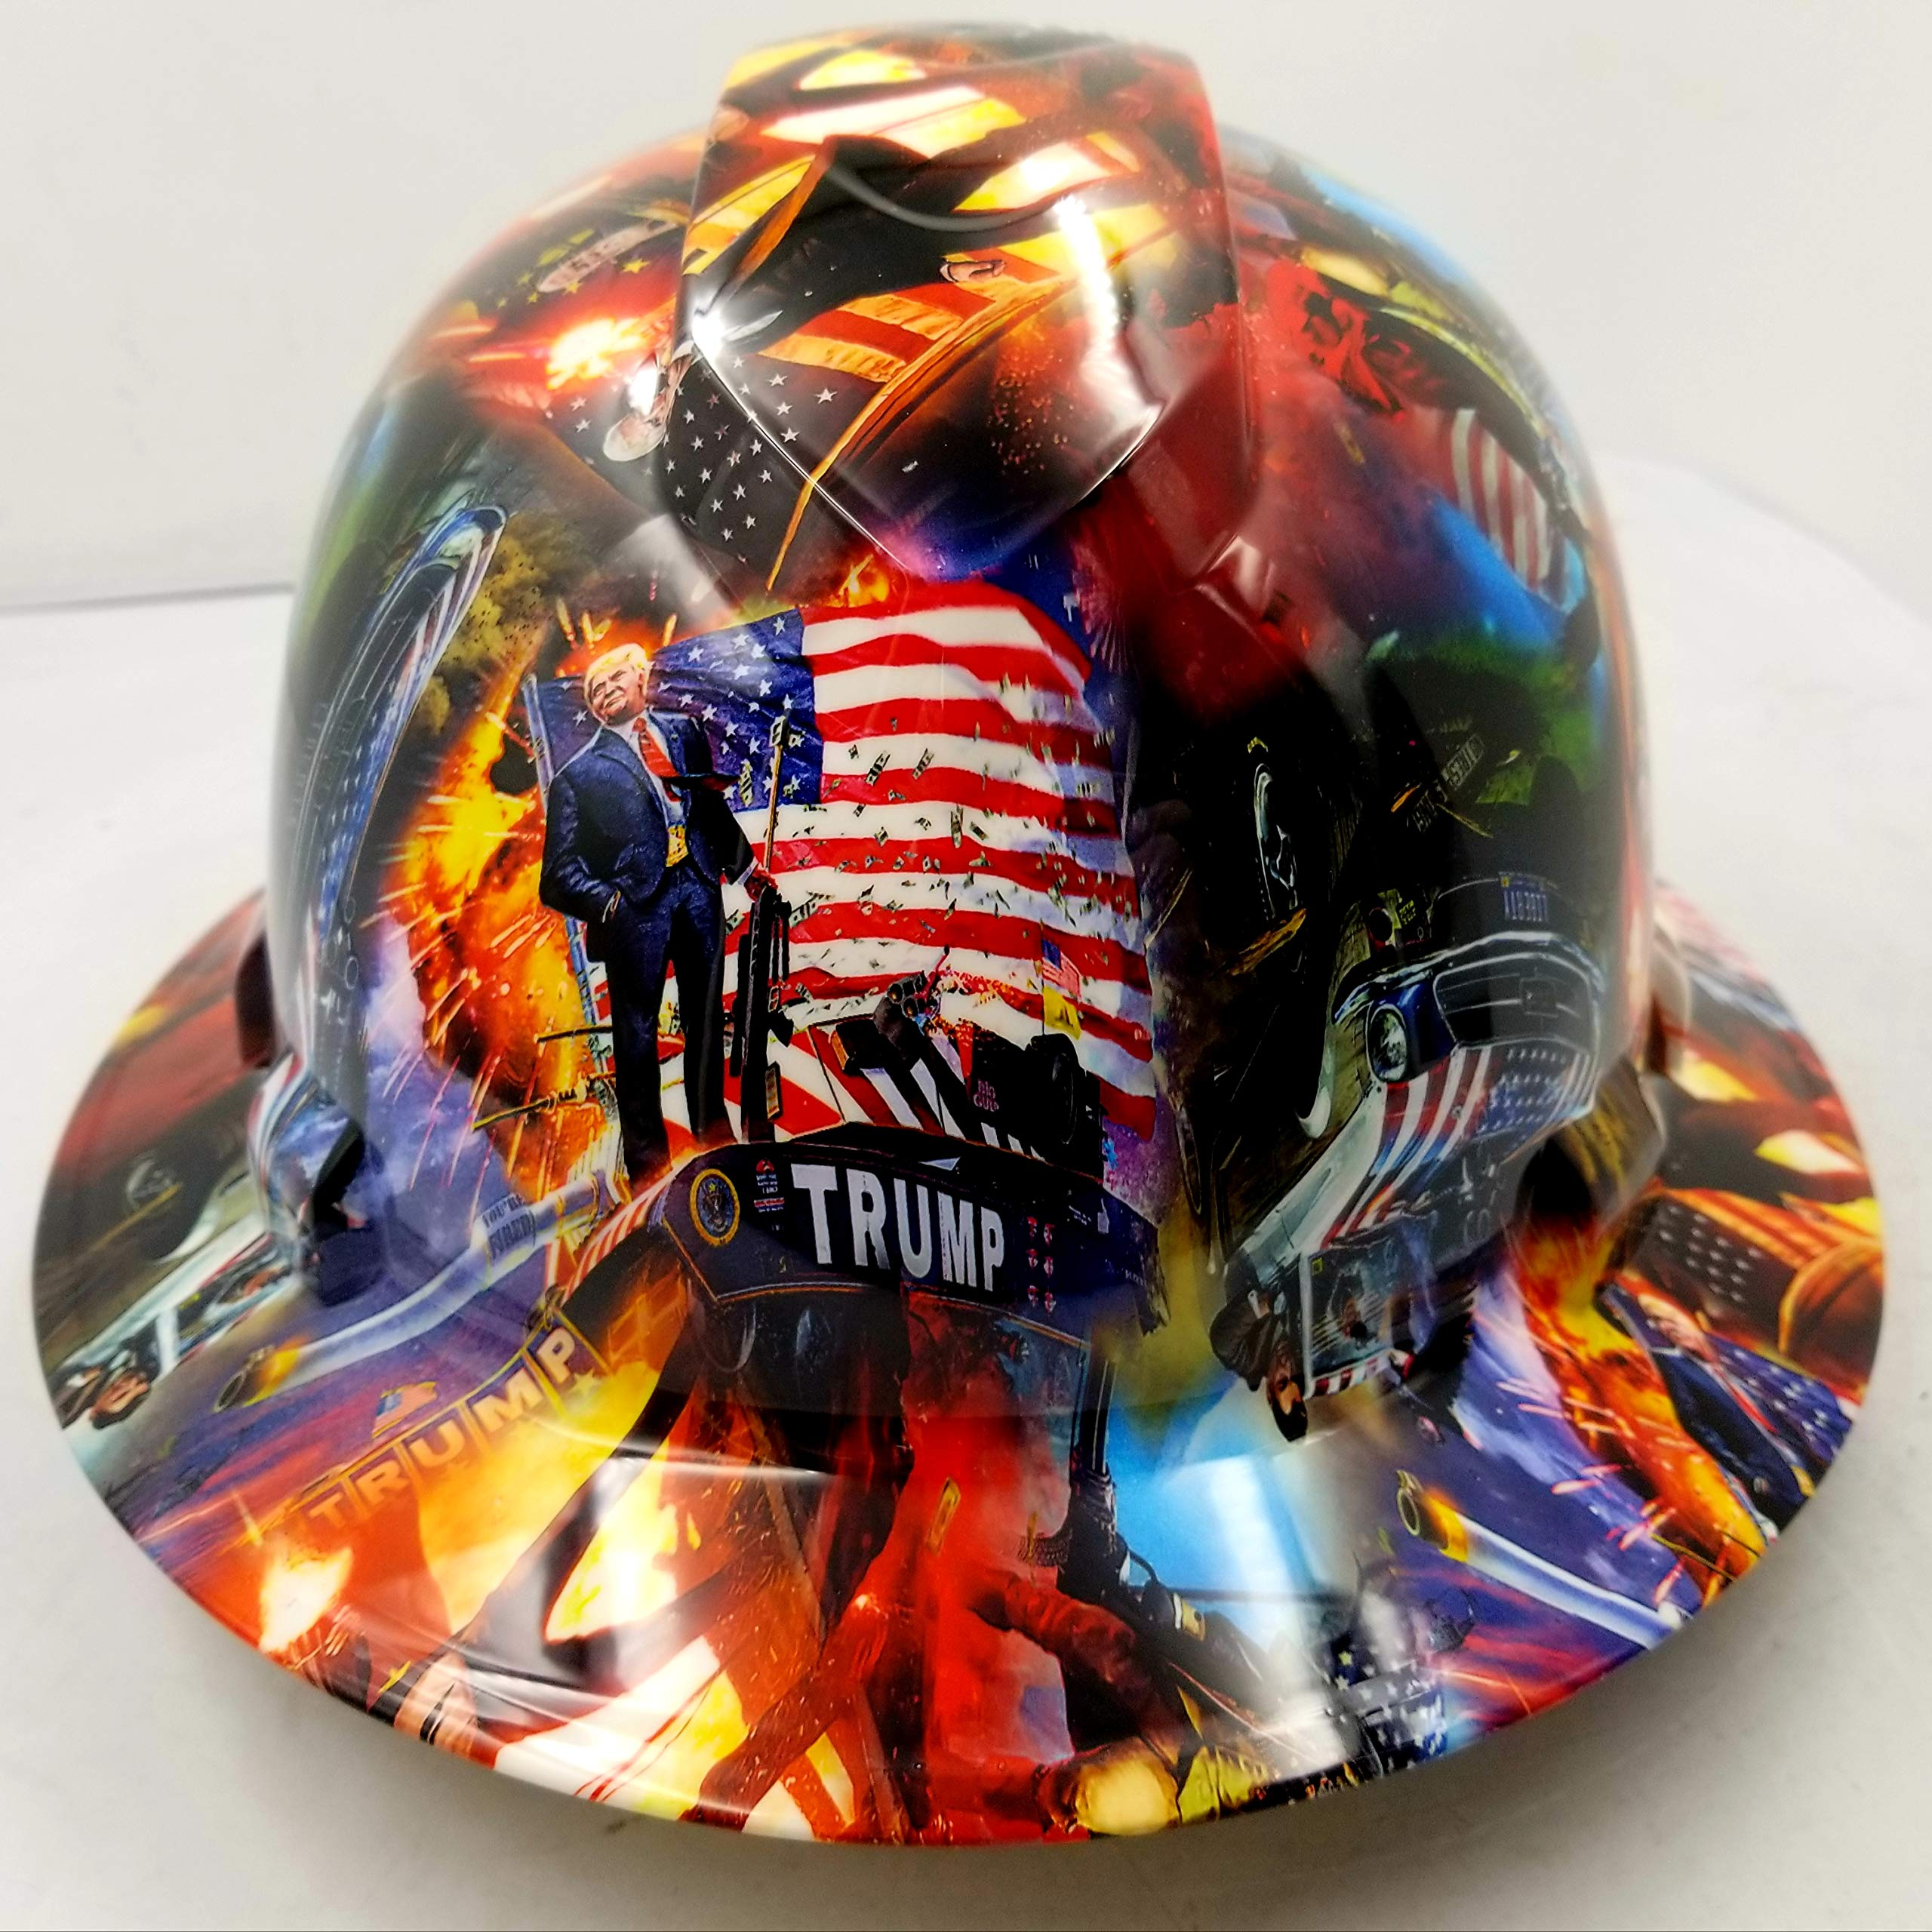 Wet Works Imaging Customized Pyramex Full Brim President Trump Donald Trump Hard HAT with Ratcheting Suspension Custom LIDS Crazy Sick Construction PPE